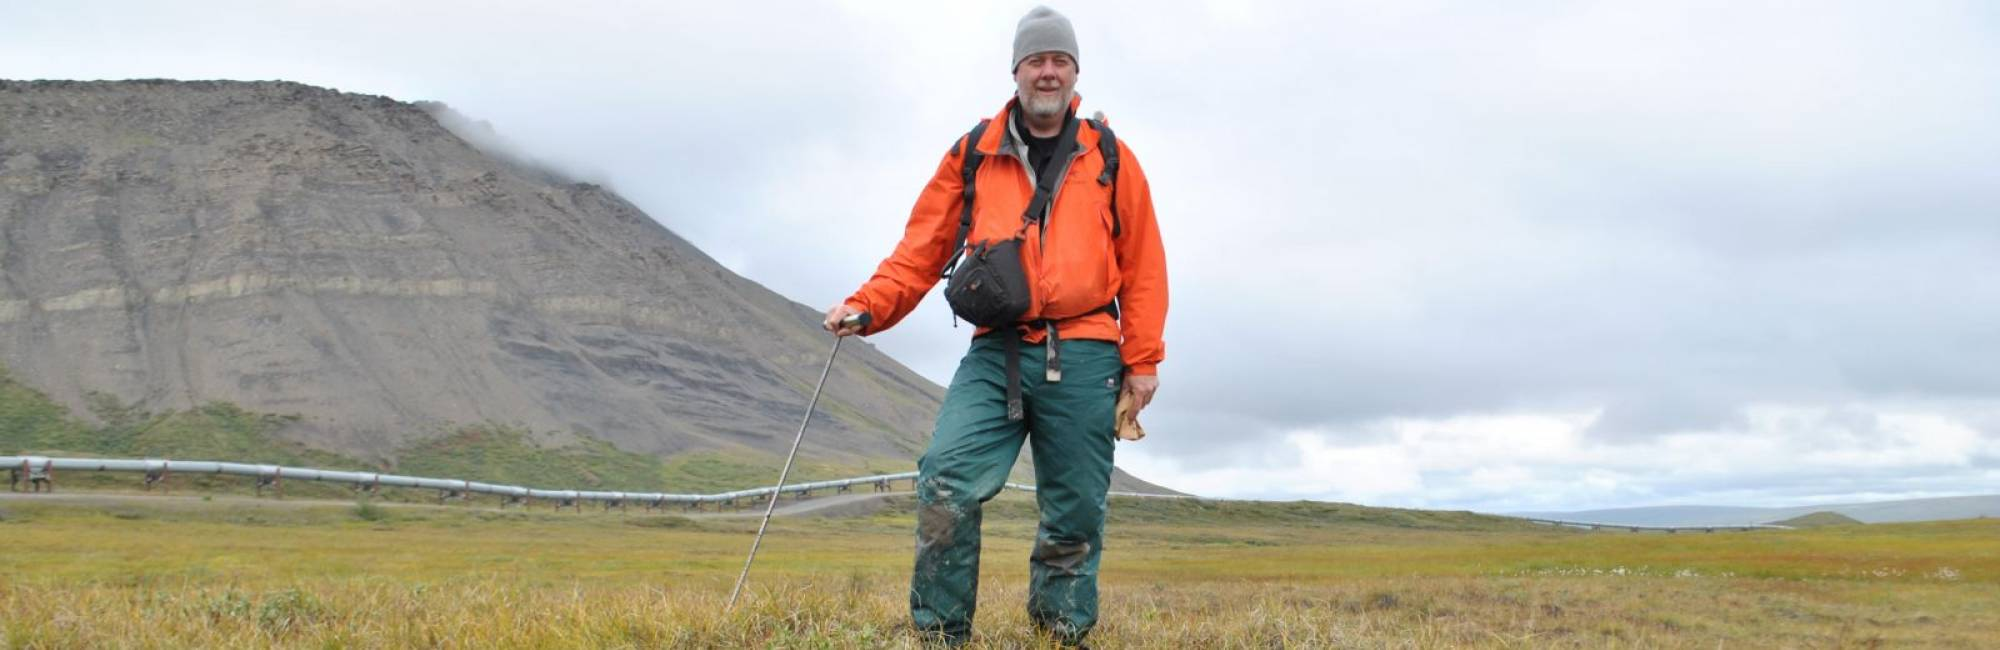 Scientist stands holding tool, in cold grassy landscape